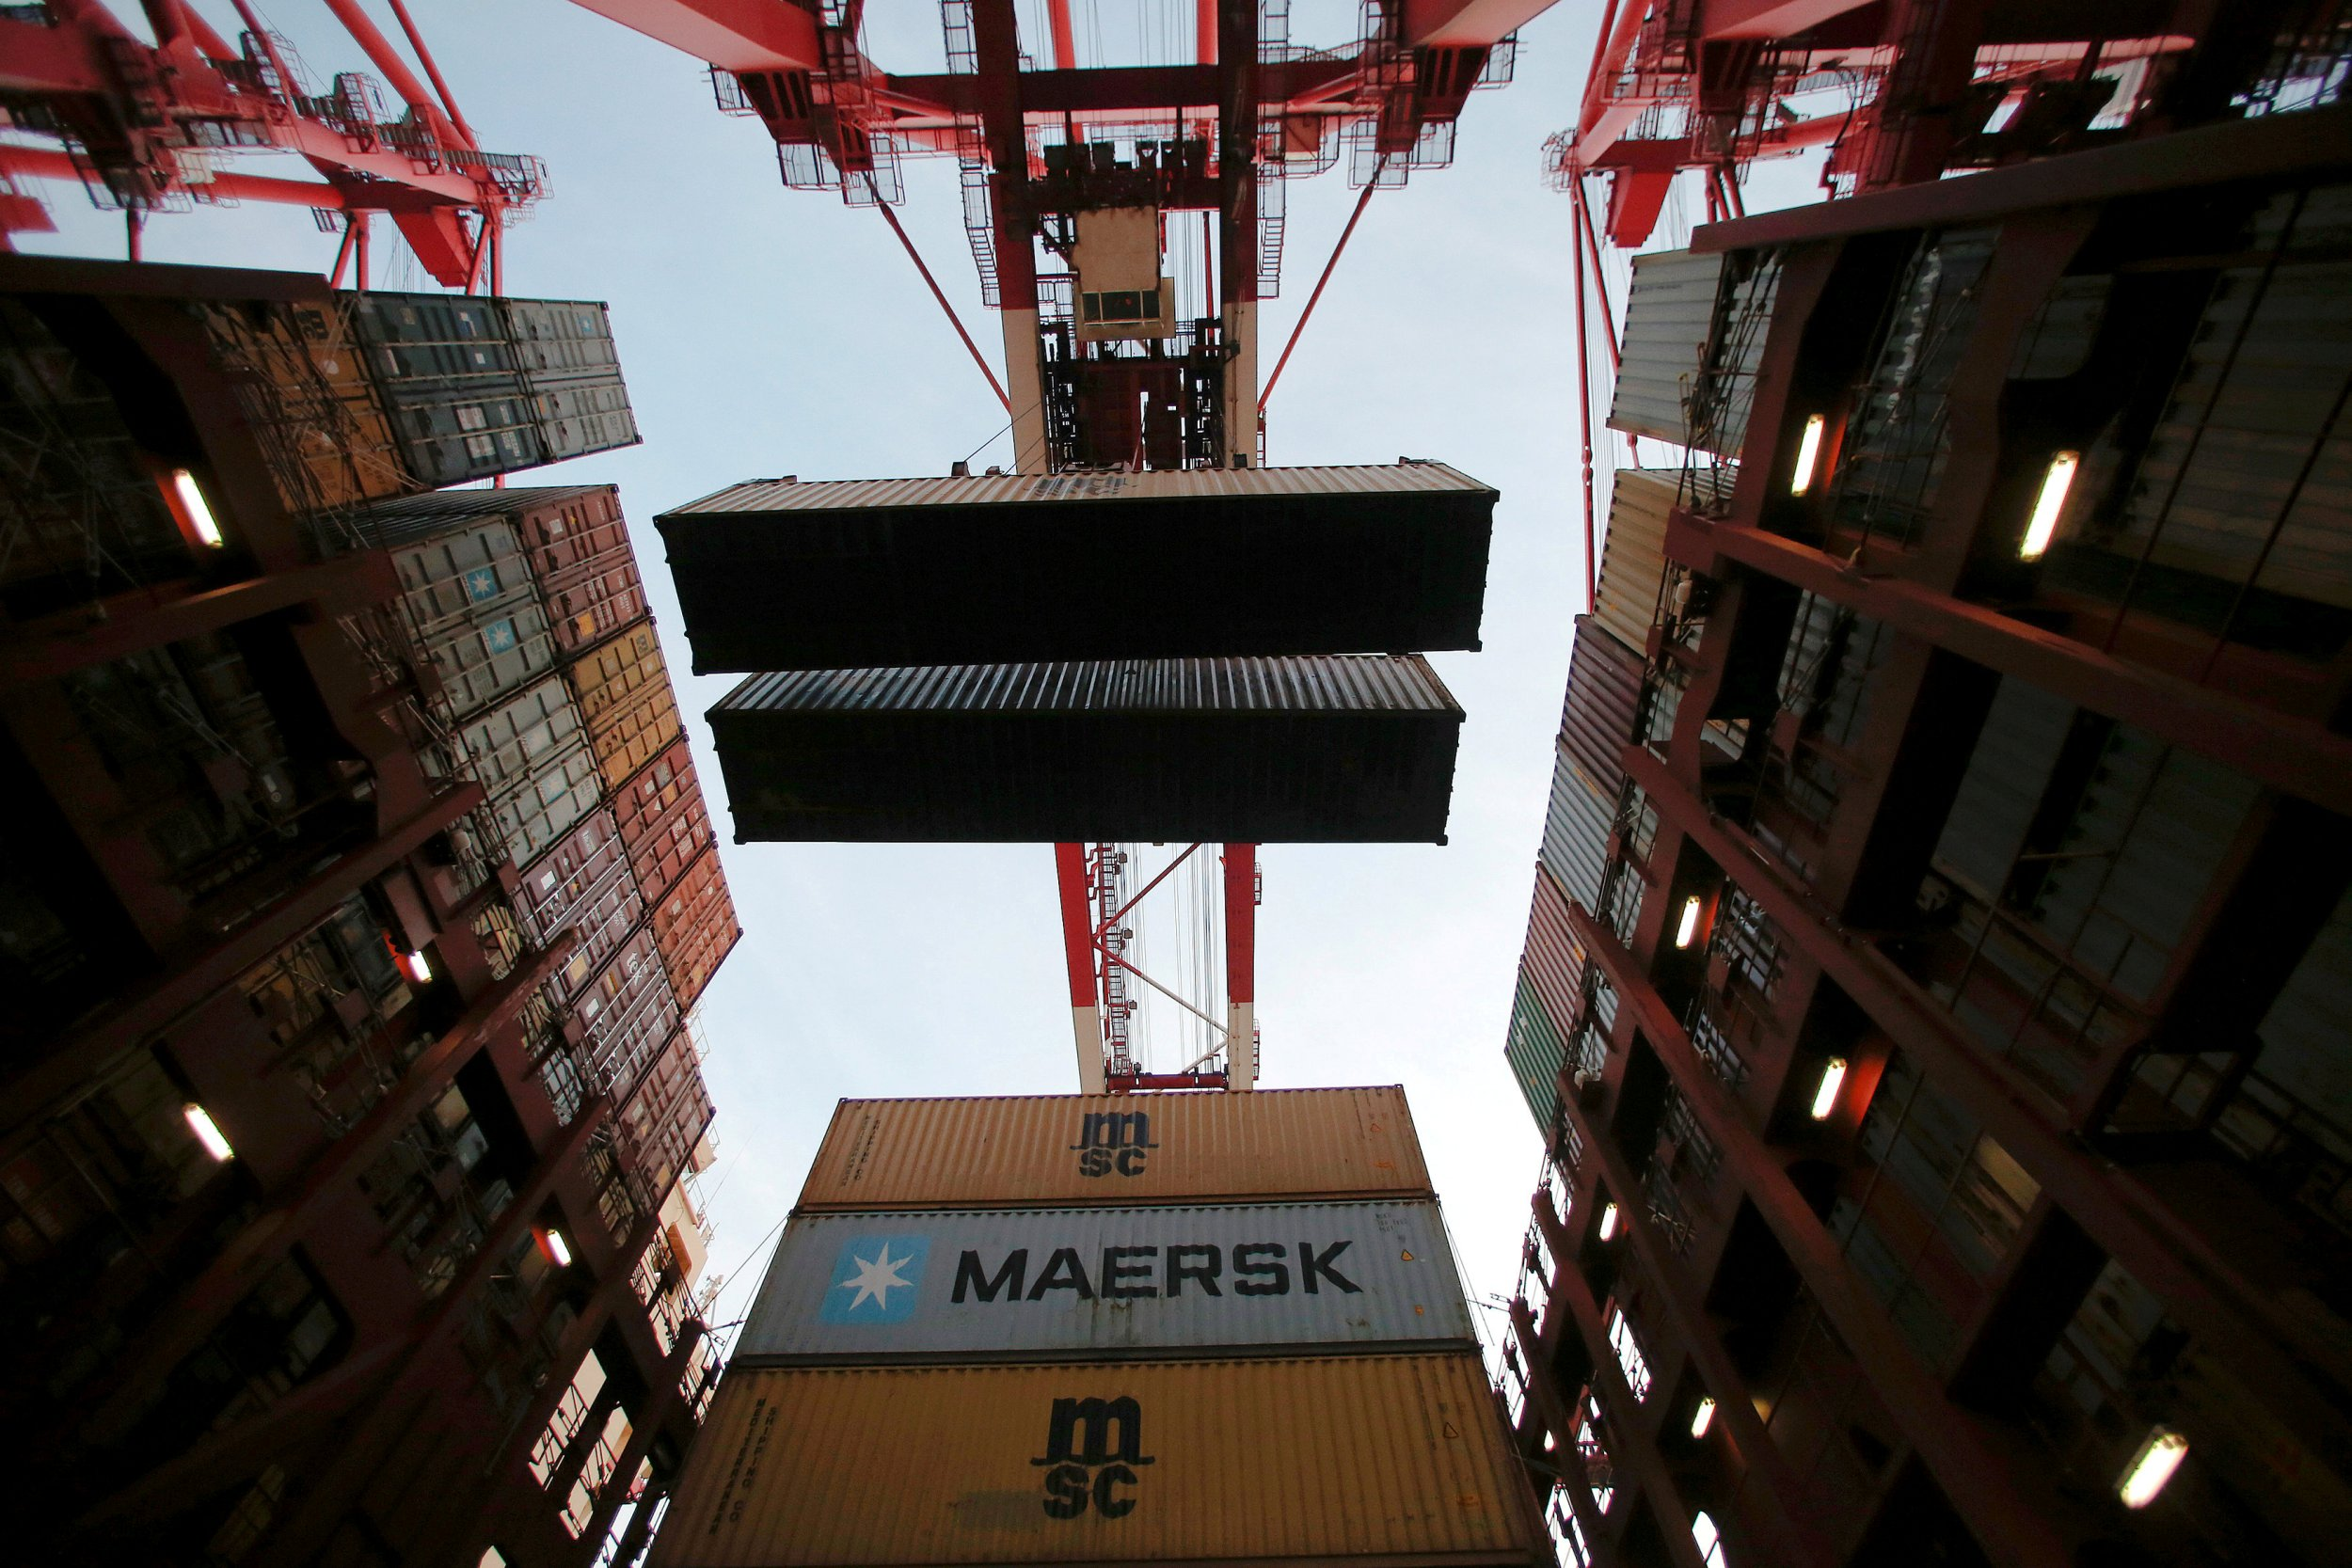 Maersk ship containers